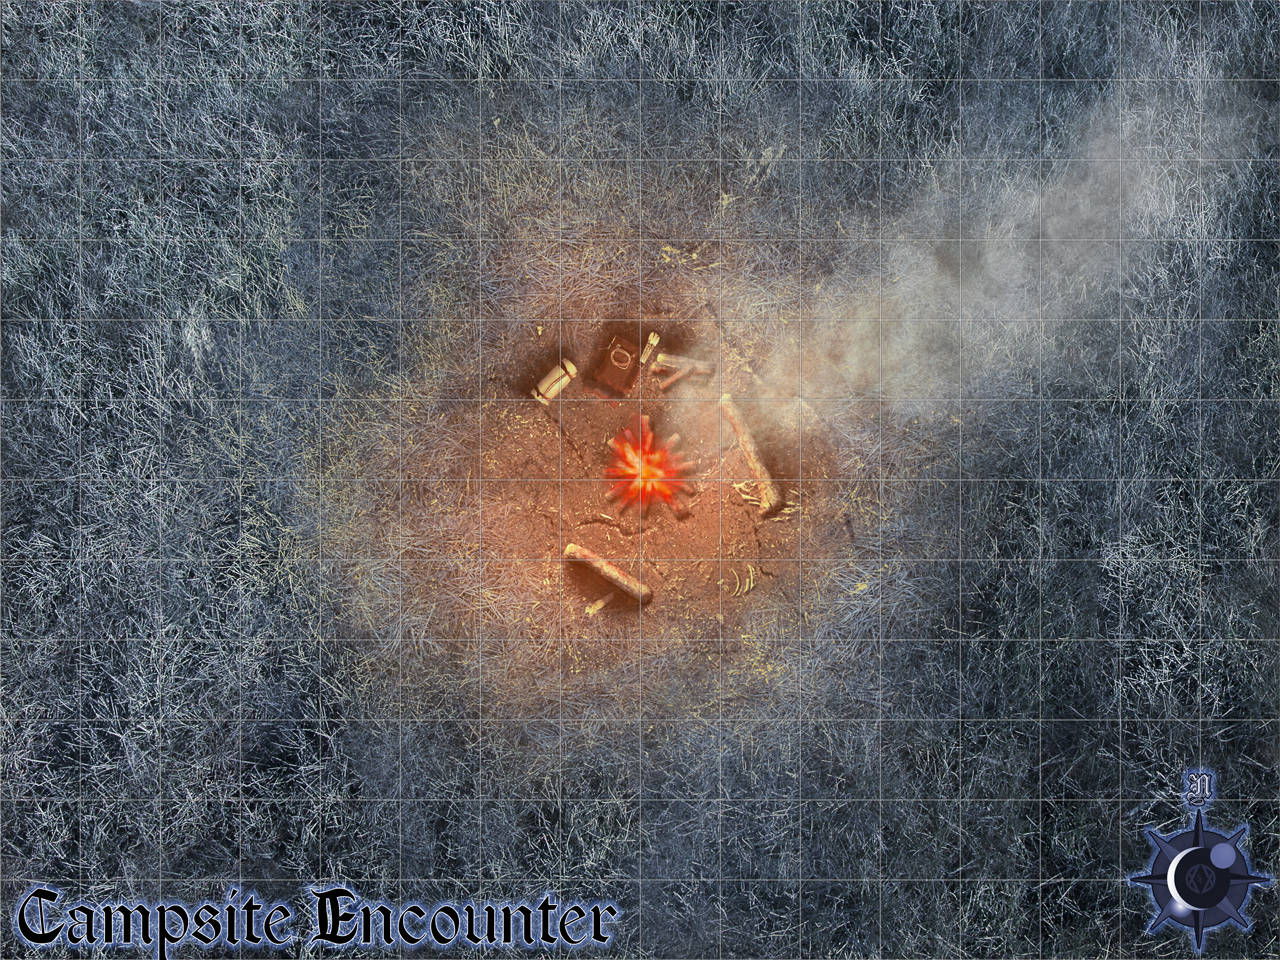 Campsite Encounter - This is an encounter map for an adventure by Silver Crescent Publishing for its Realms of Twilight campaign setting. The PCs are jumped by a couple of lycanthropes.